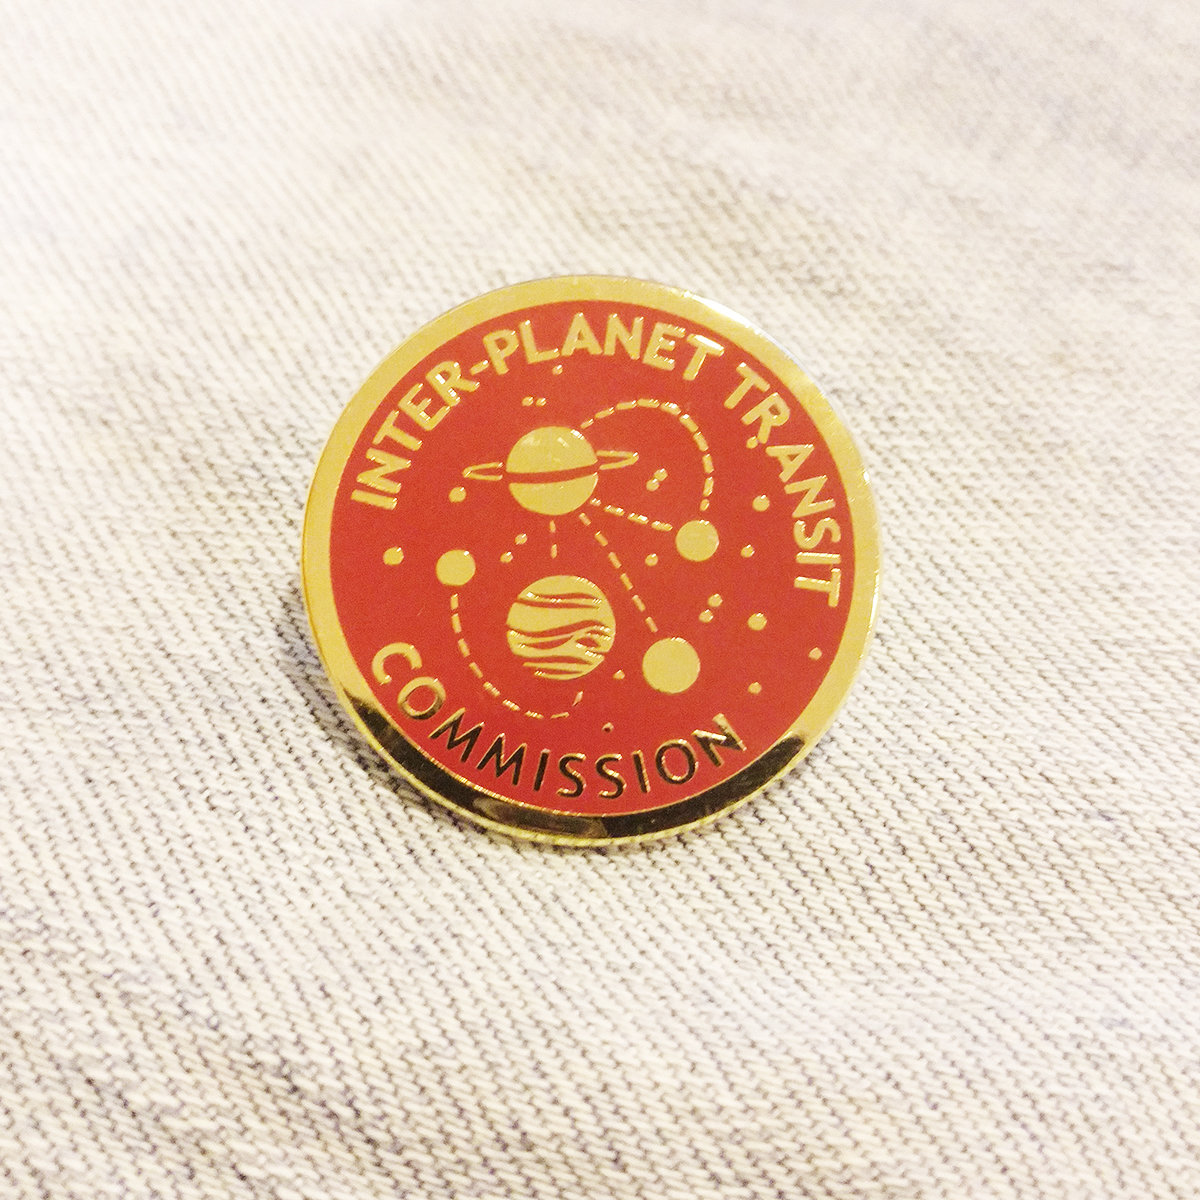 INTER-PLANET TRANSIT COMMISSION PIN